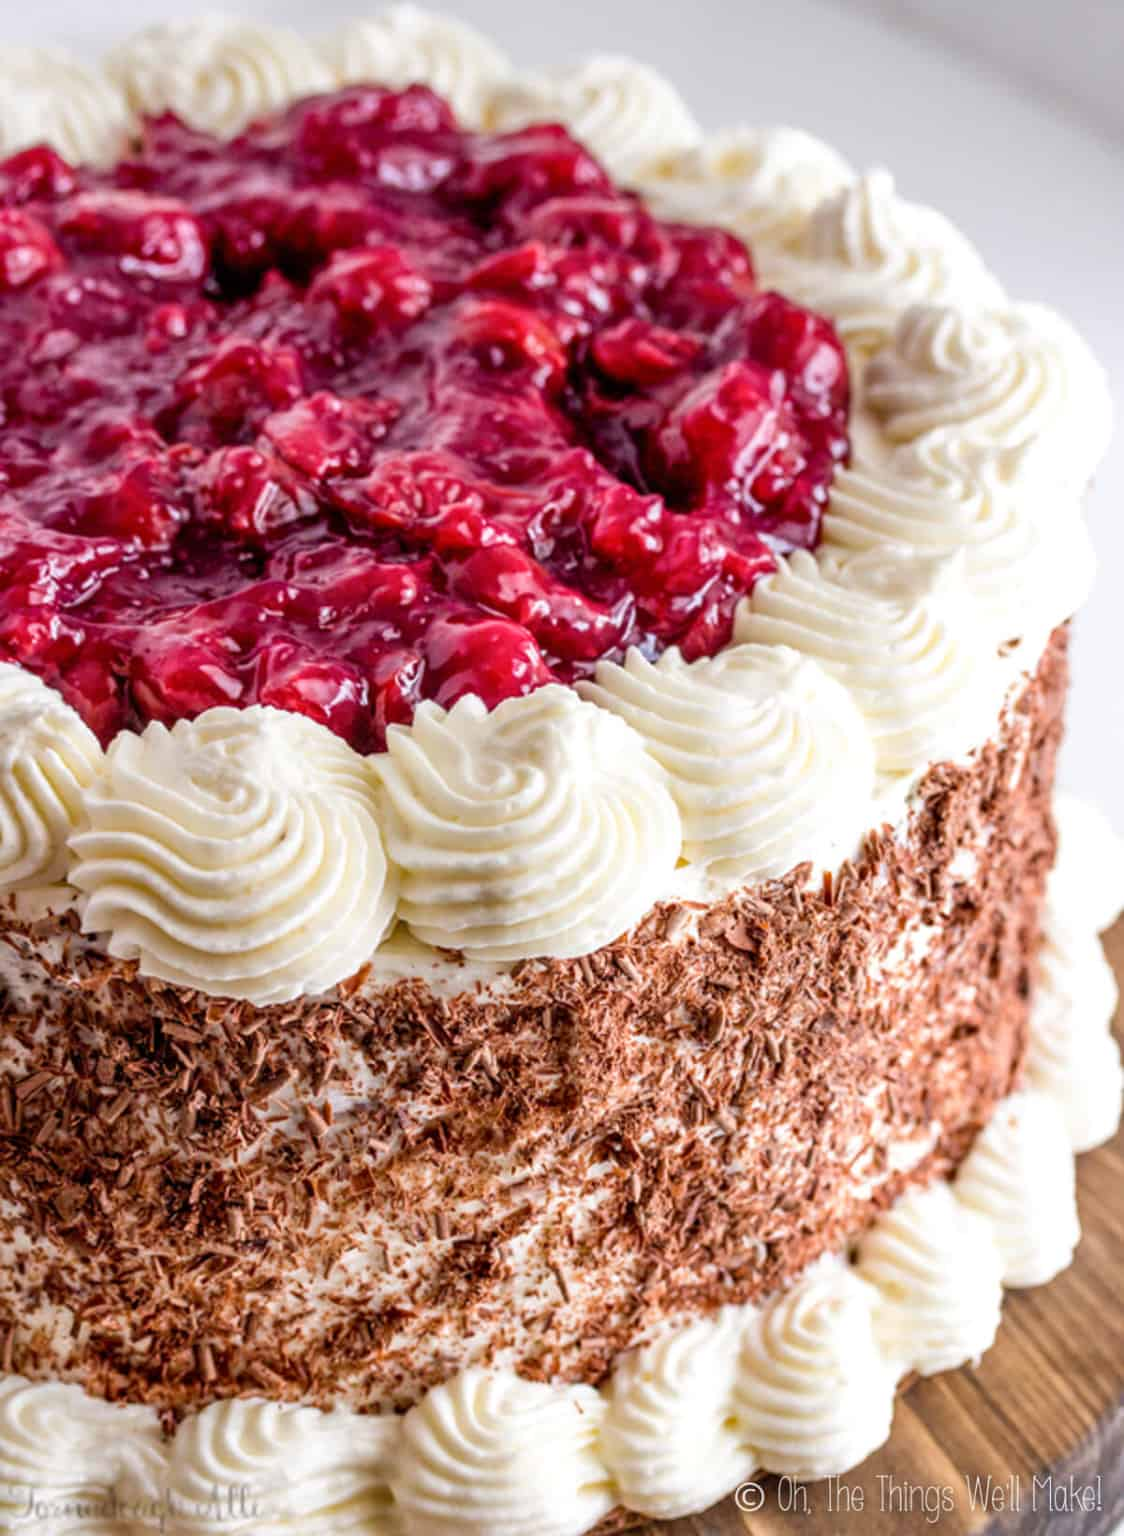 Overhead view of a black forest cake. Red cherries on top, white whipped frosting on the sides, and chocolate shavings on the side.